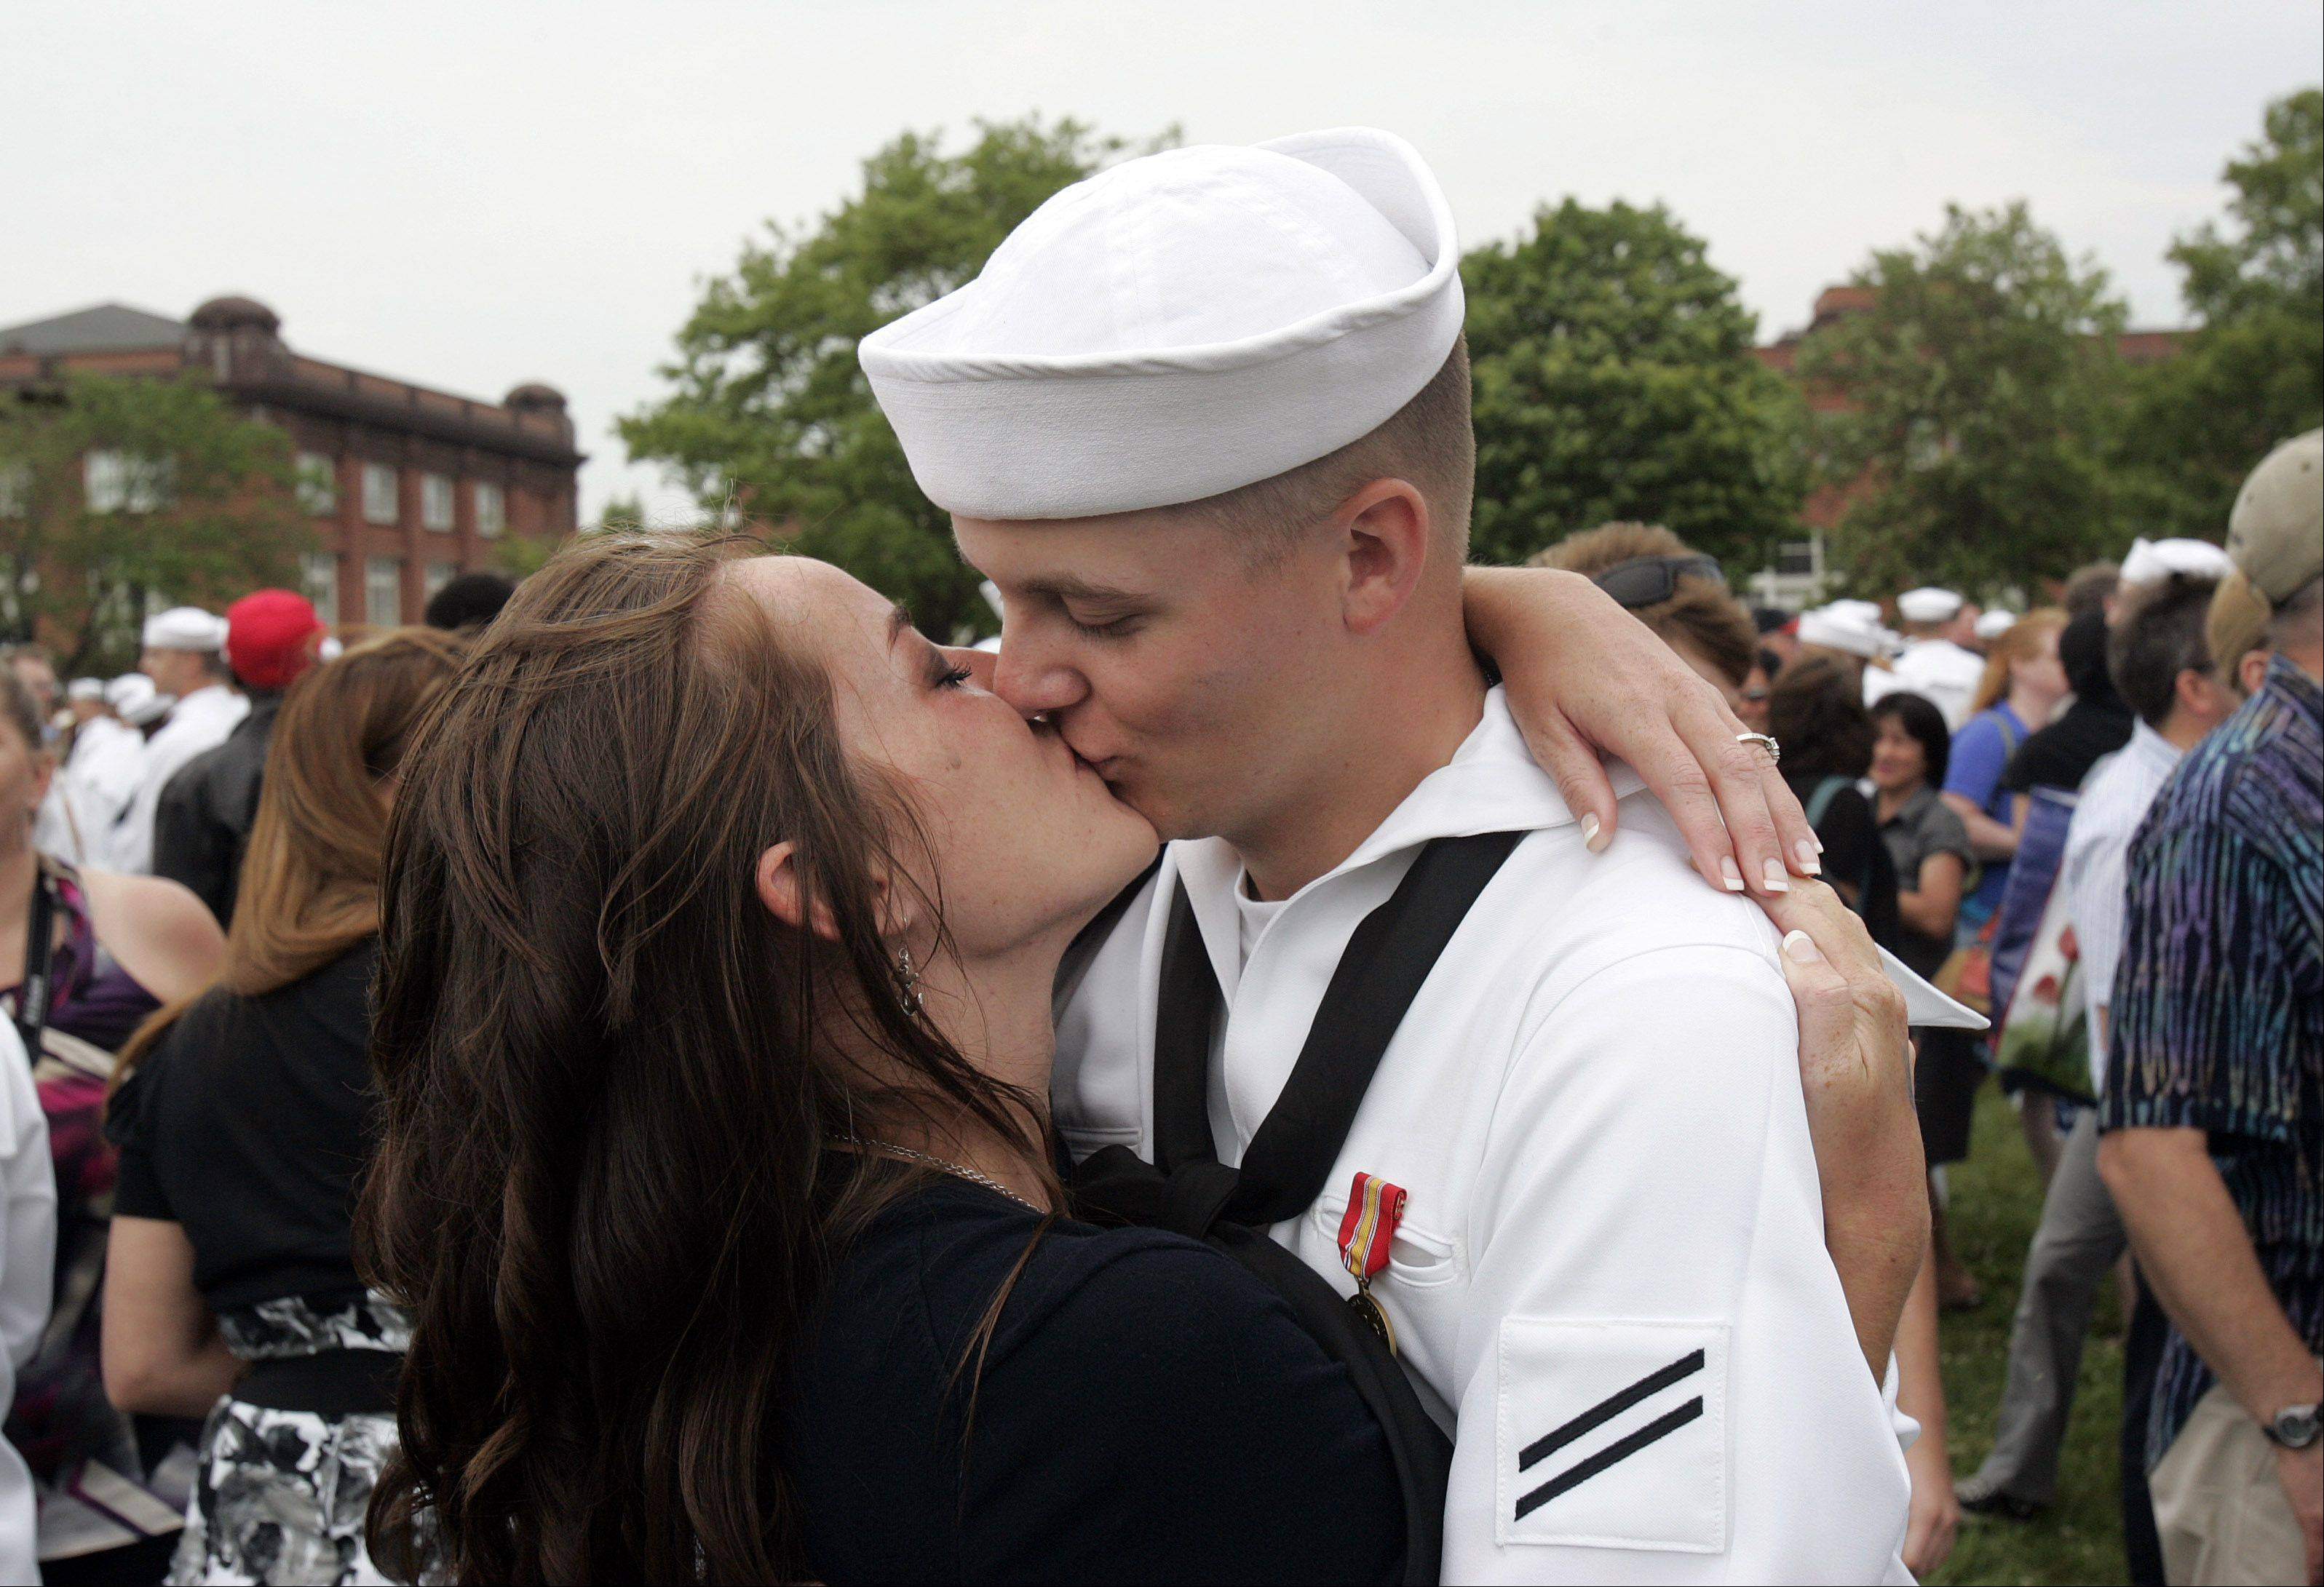 Jayson Cobb of Alabama hugs his fiance Haley Martin after graduation ceremonies at Great Lakes Naval Station Friday. Close to 800 recruits were minted as sailors on the base's 100th anniversary.